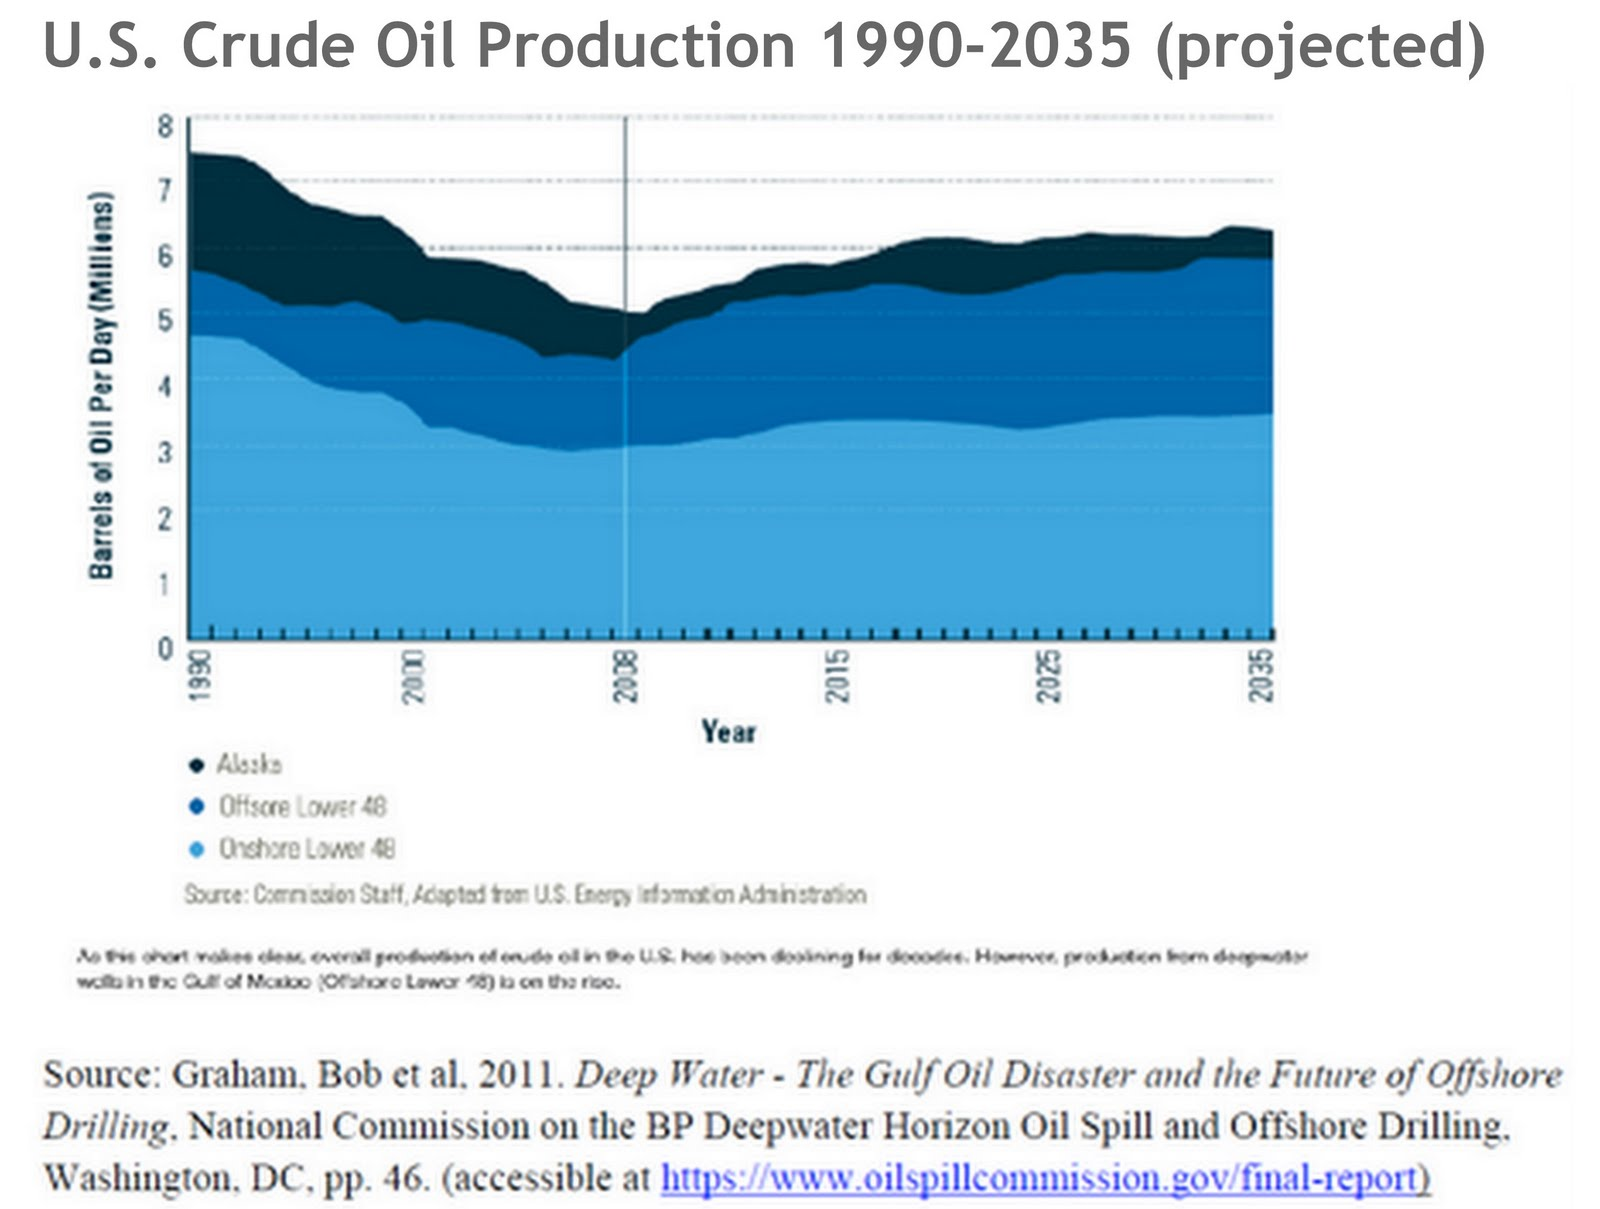 Graph indicating the U.S. Crude Oil Production 1990-2035